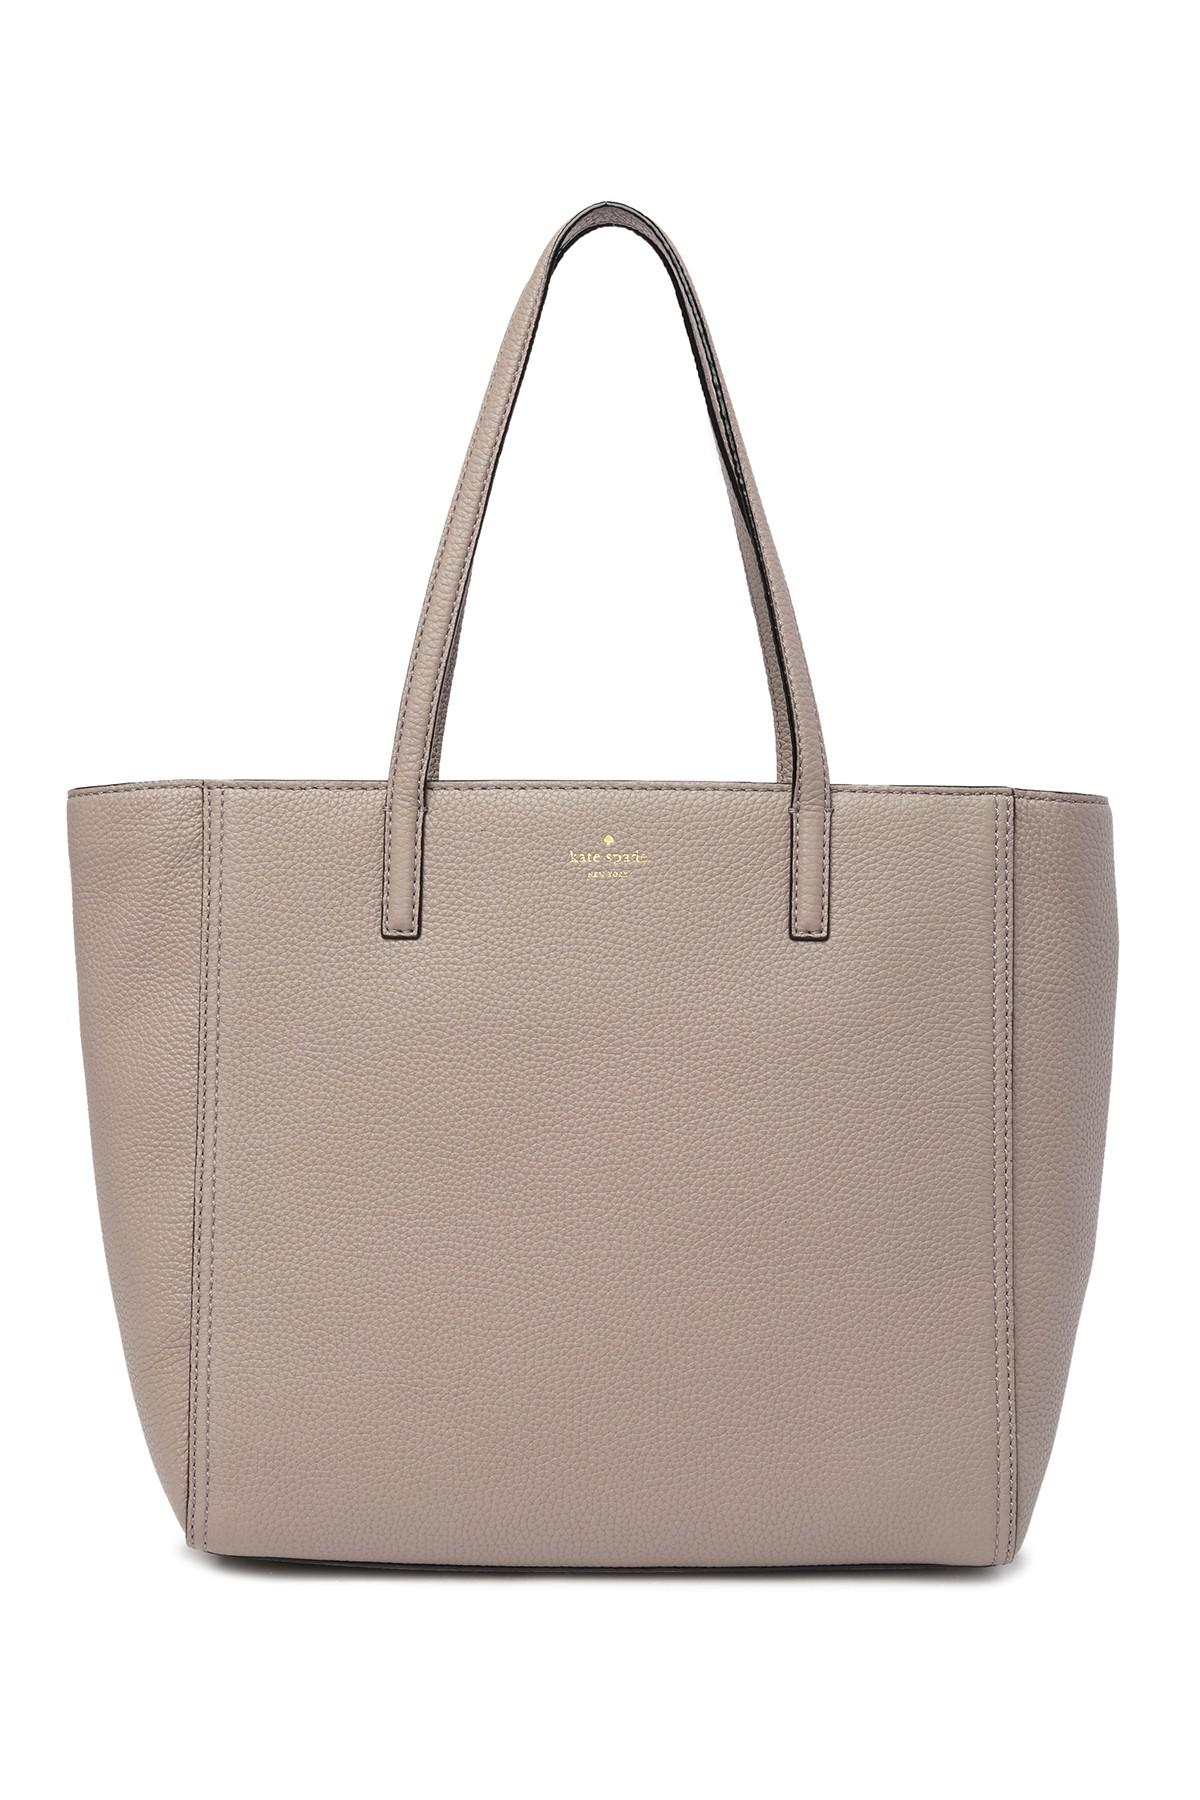 Kate Spade. Women s Hallie Leather Tote Bag ae338168a5ddc